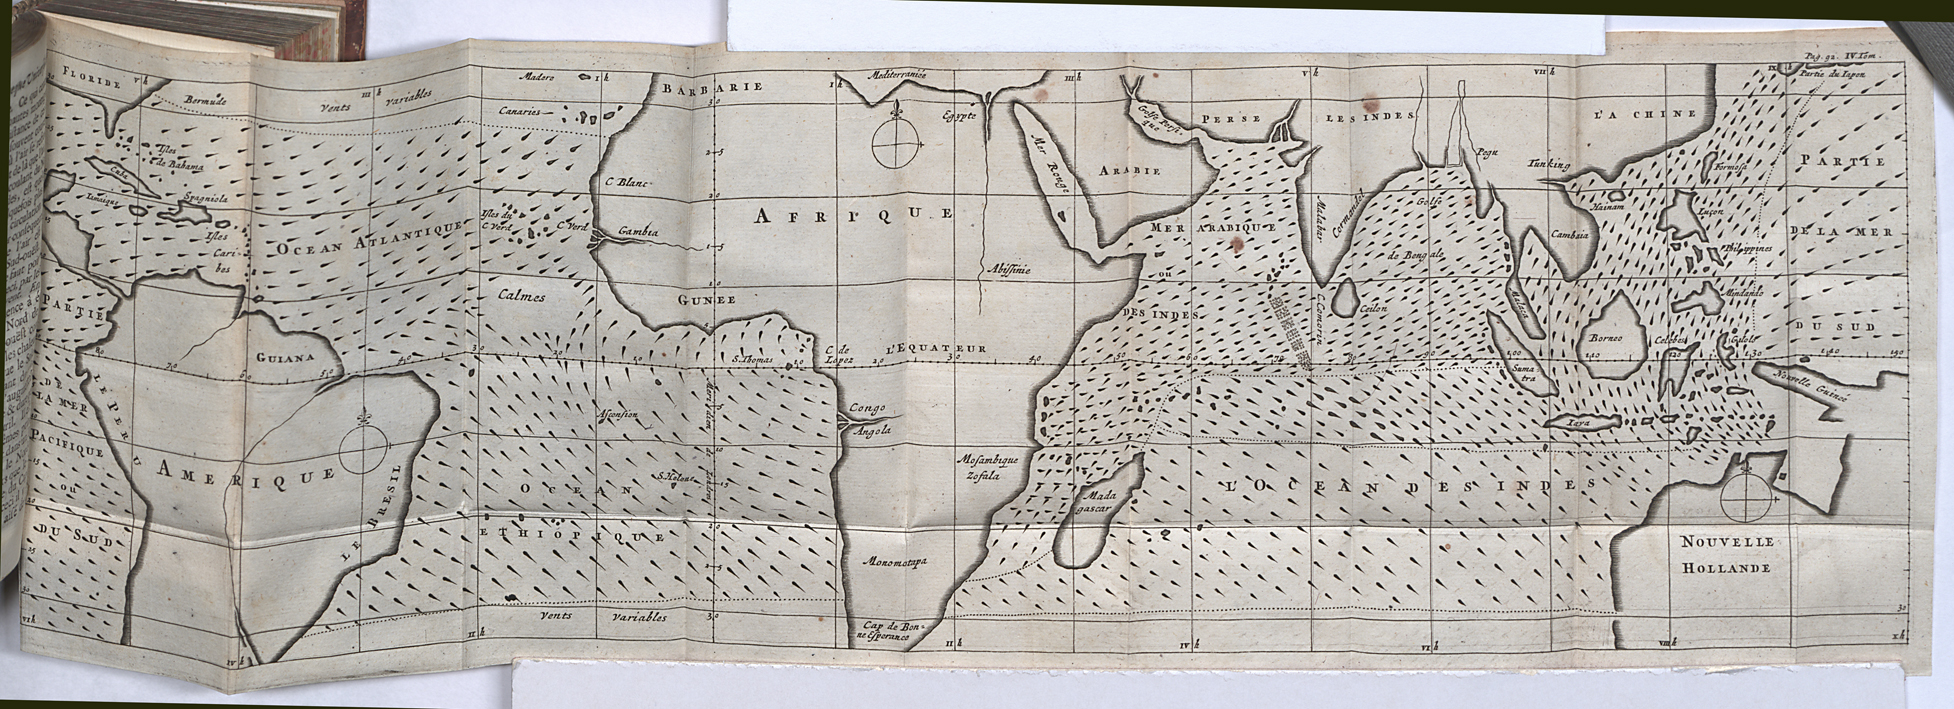 hight resolution of first meteorological map charting the directions of trade winds and monsoons having collected information from navigators familiar with ocean transits